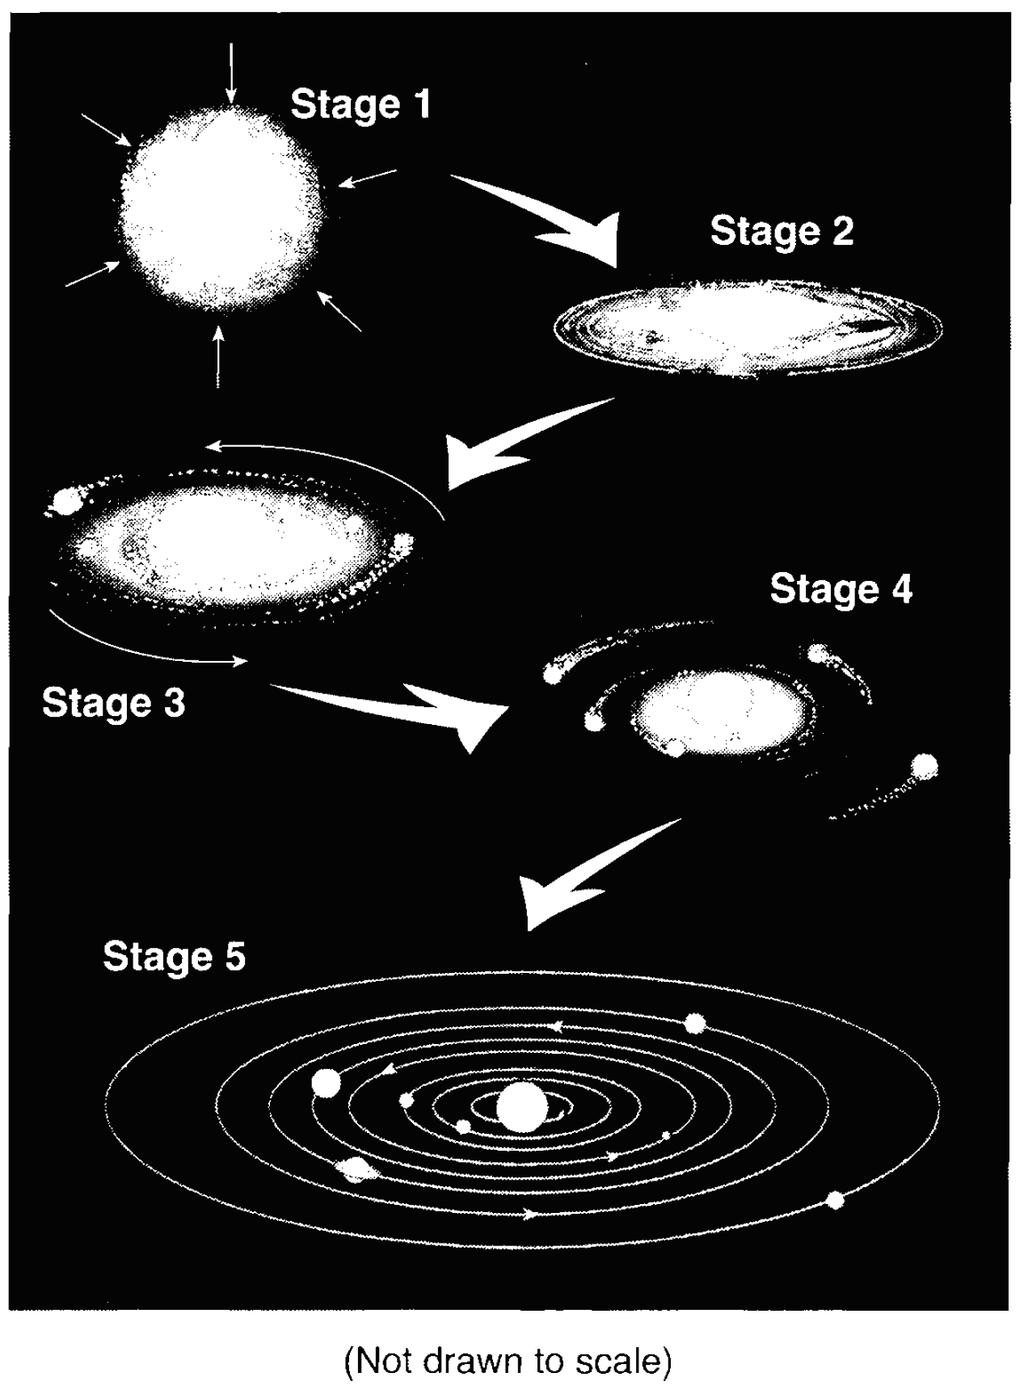 122. Base your answer to the following question on the diagram below. The diagram represents the inferred stages in the formation of our solar system. Stage 1 shows a contracting gas cloud.